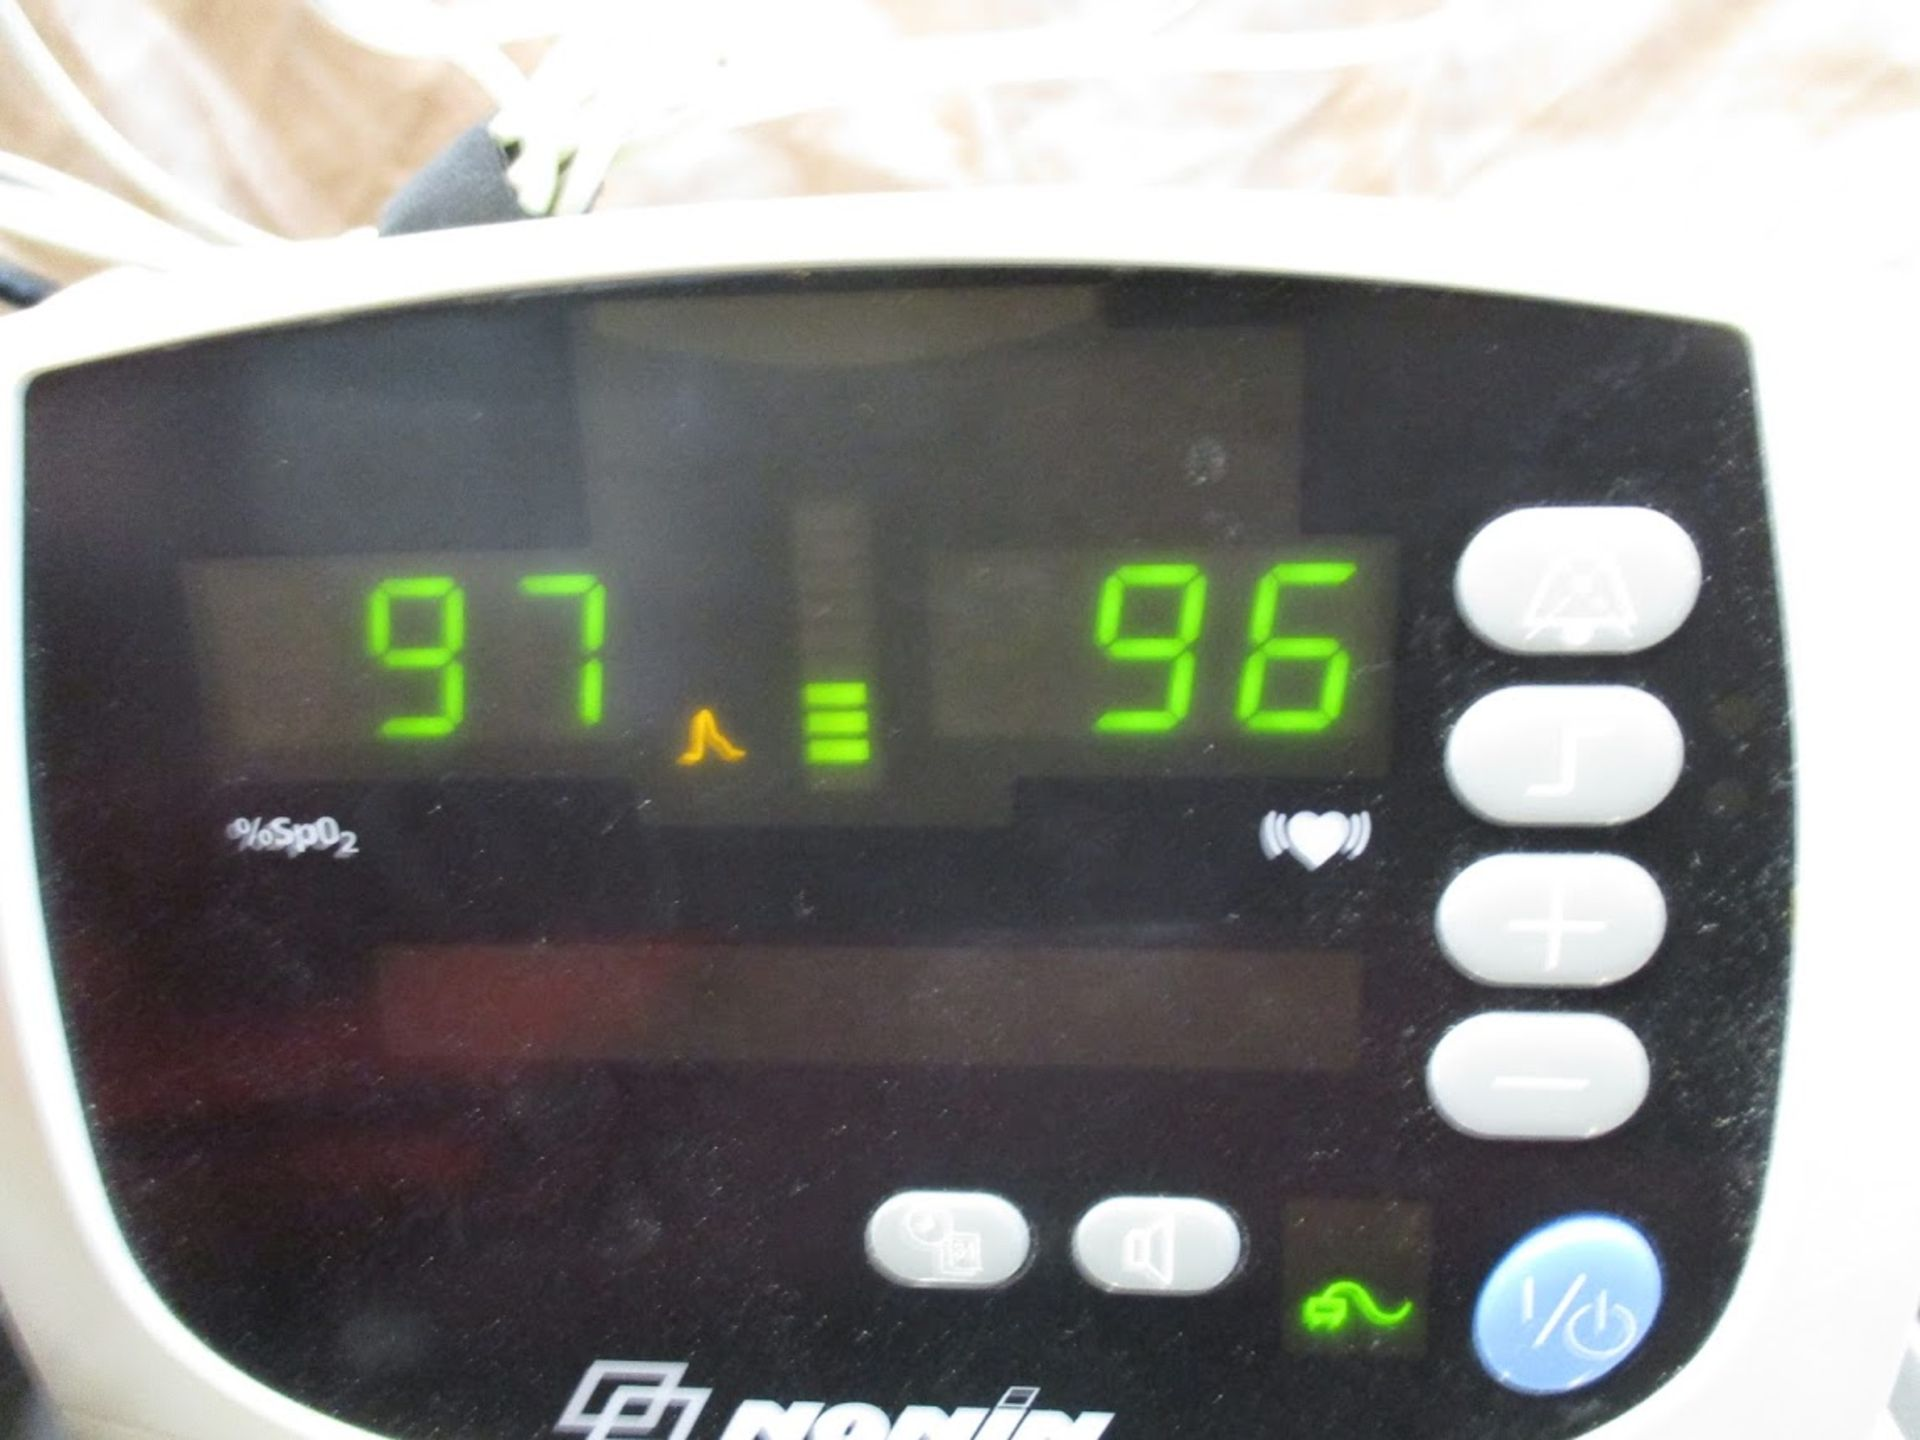 Nonin 9600 Pulse Oximeter with blood pressure cuffs. 115V - Image 6 of 7